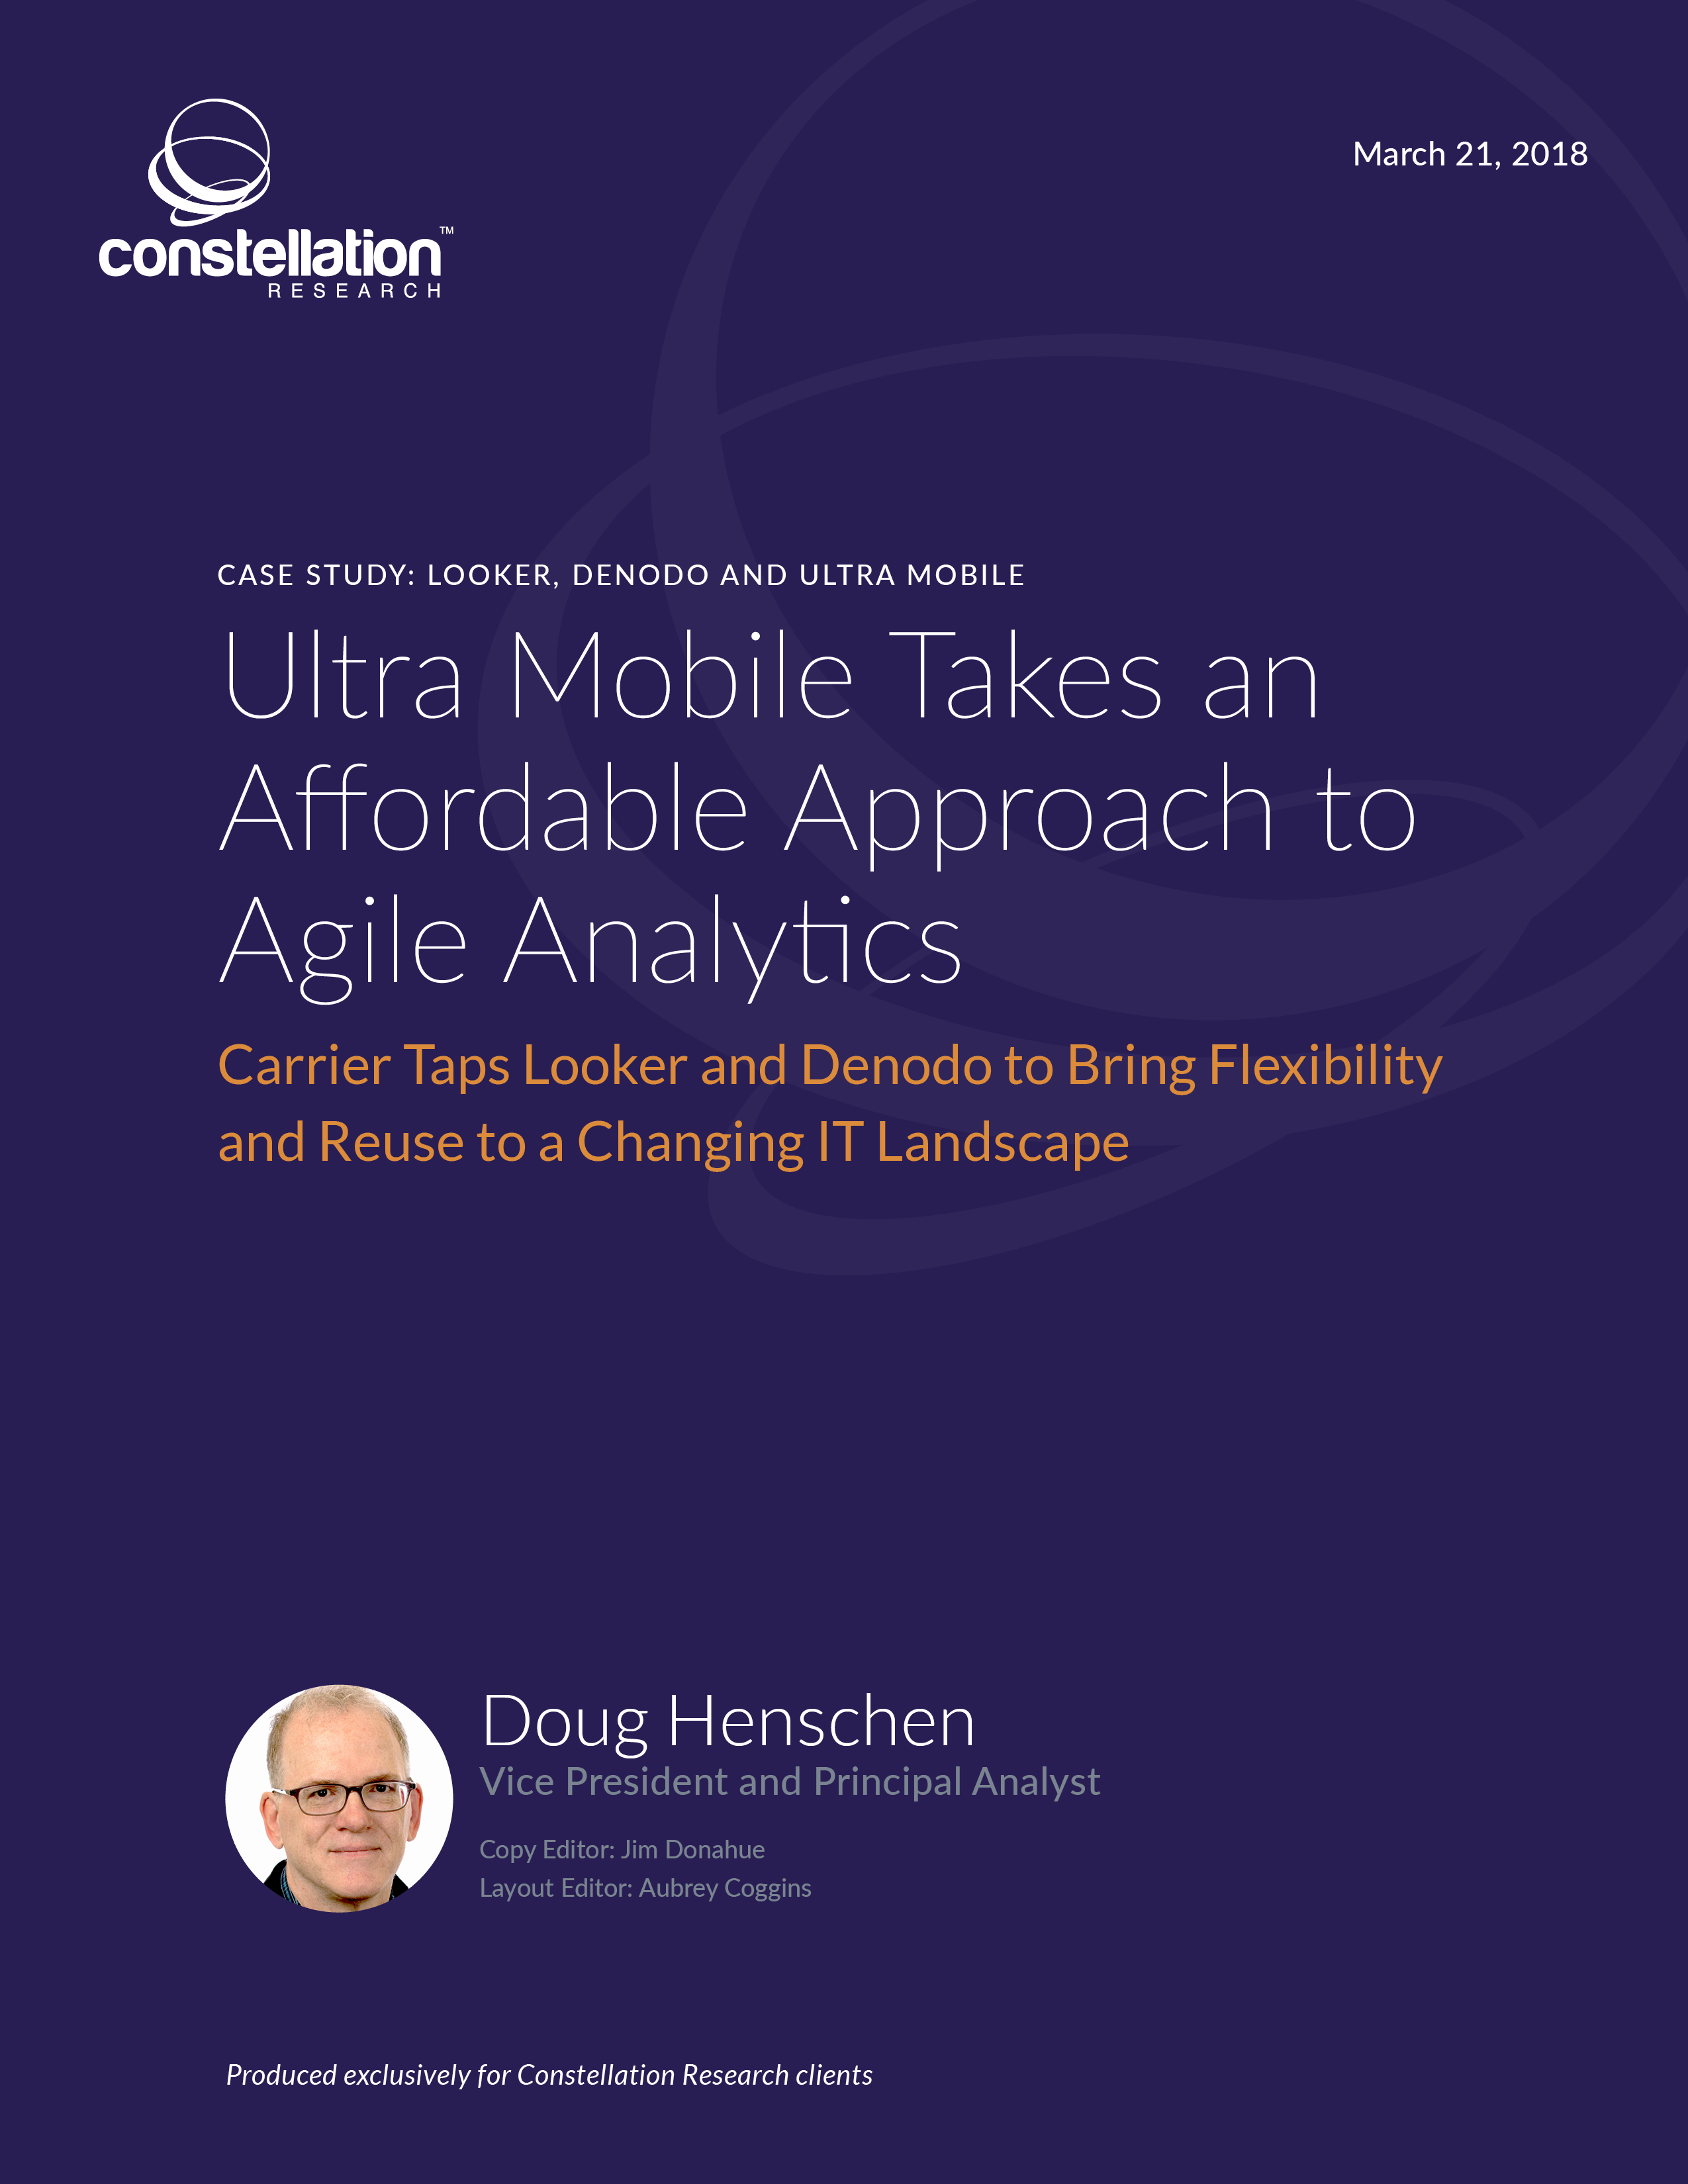 Ultra Mobile Takes an Affordable Approach to Agile Analytics